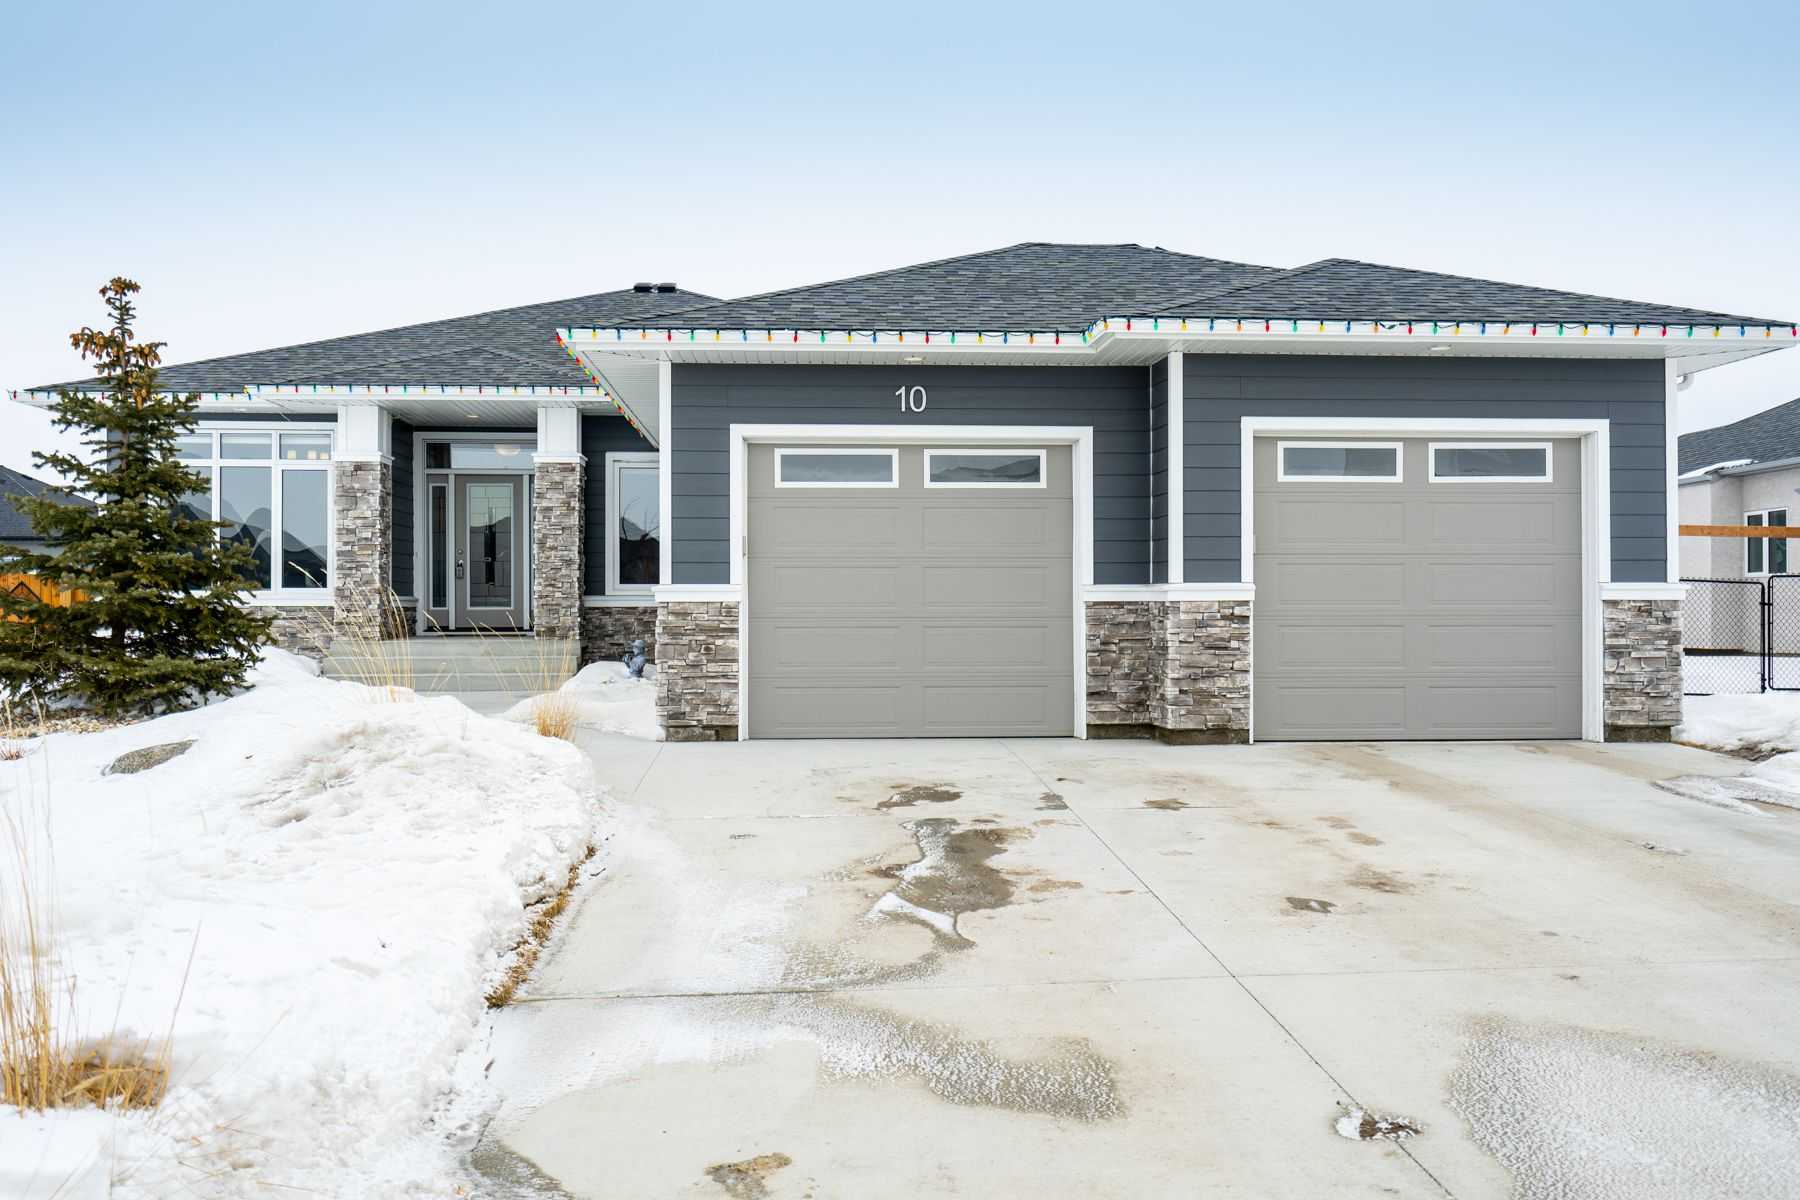 Main Photo: 10 Dovetail Crescent in Oak Bluff: RM of MacDonald House for sale (R08)  : MLS®# 202004140